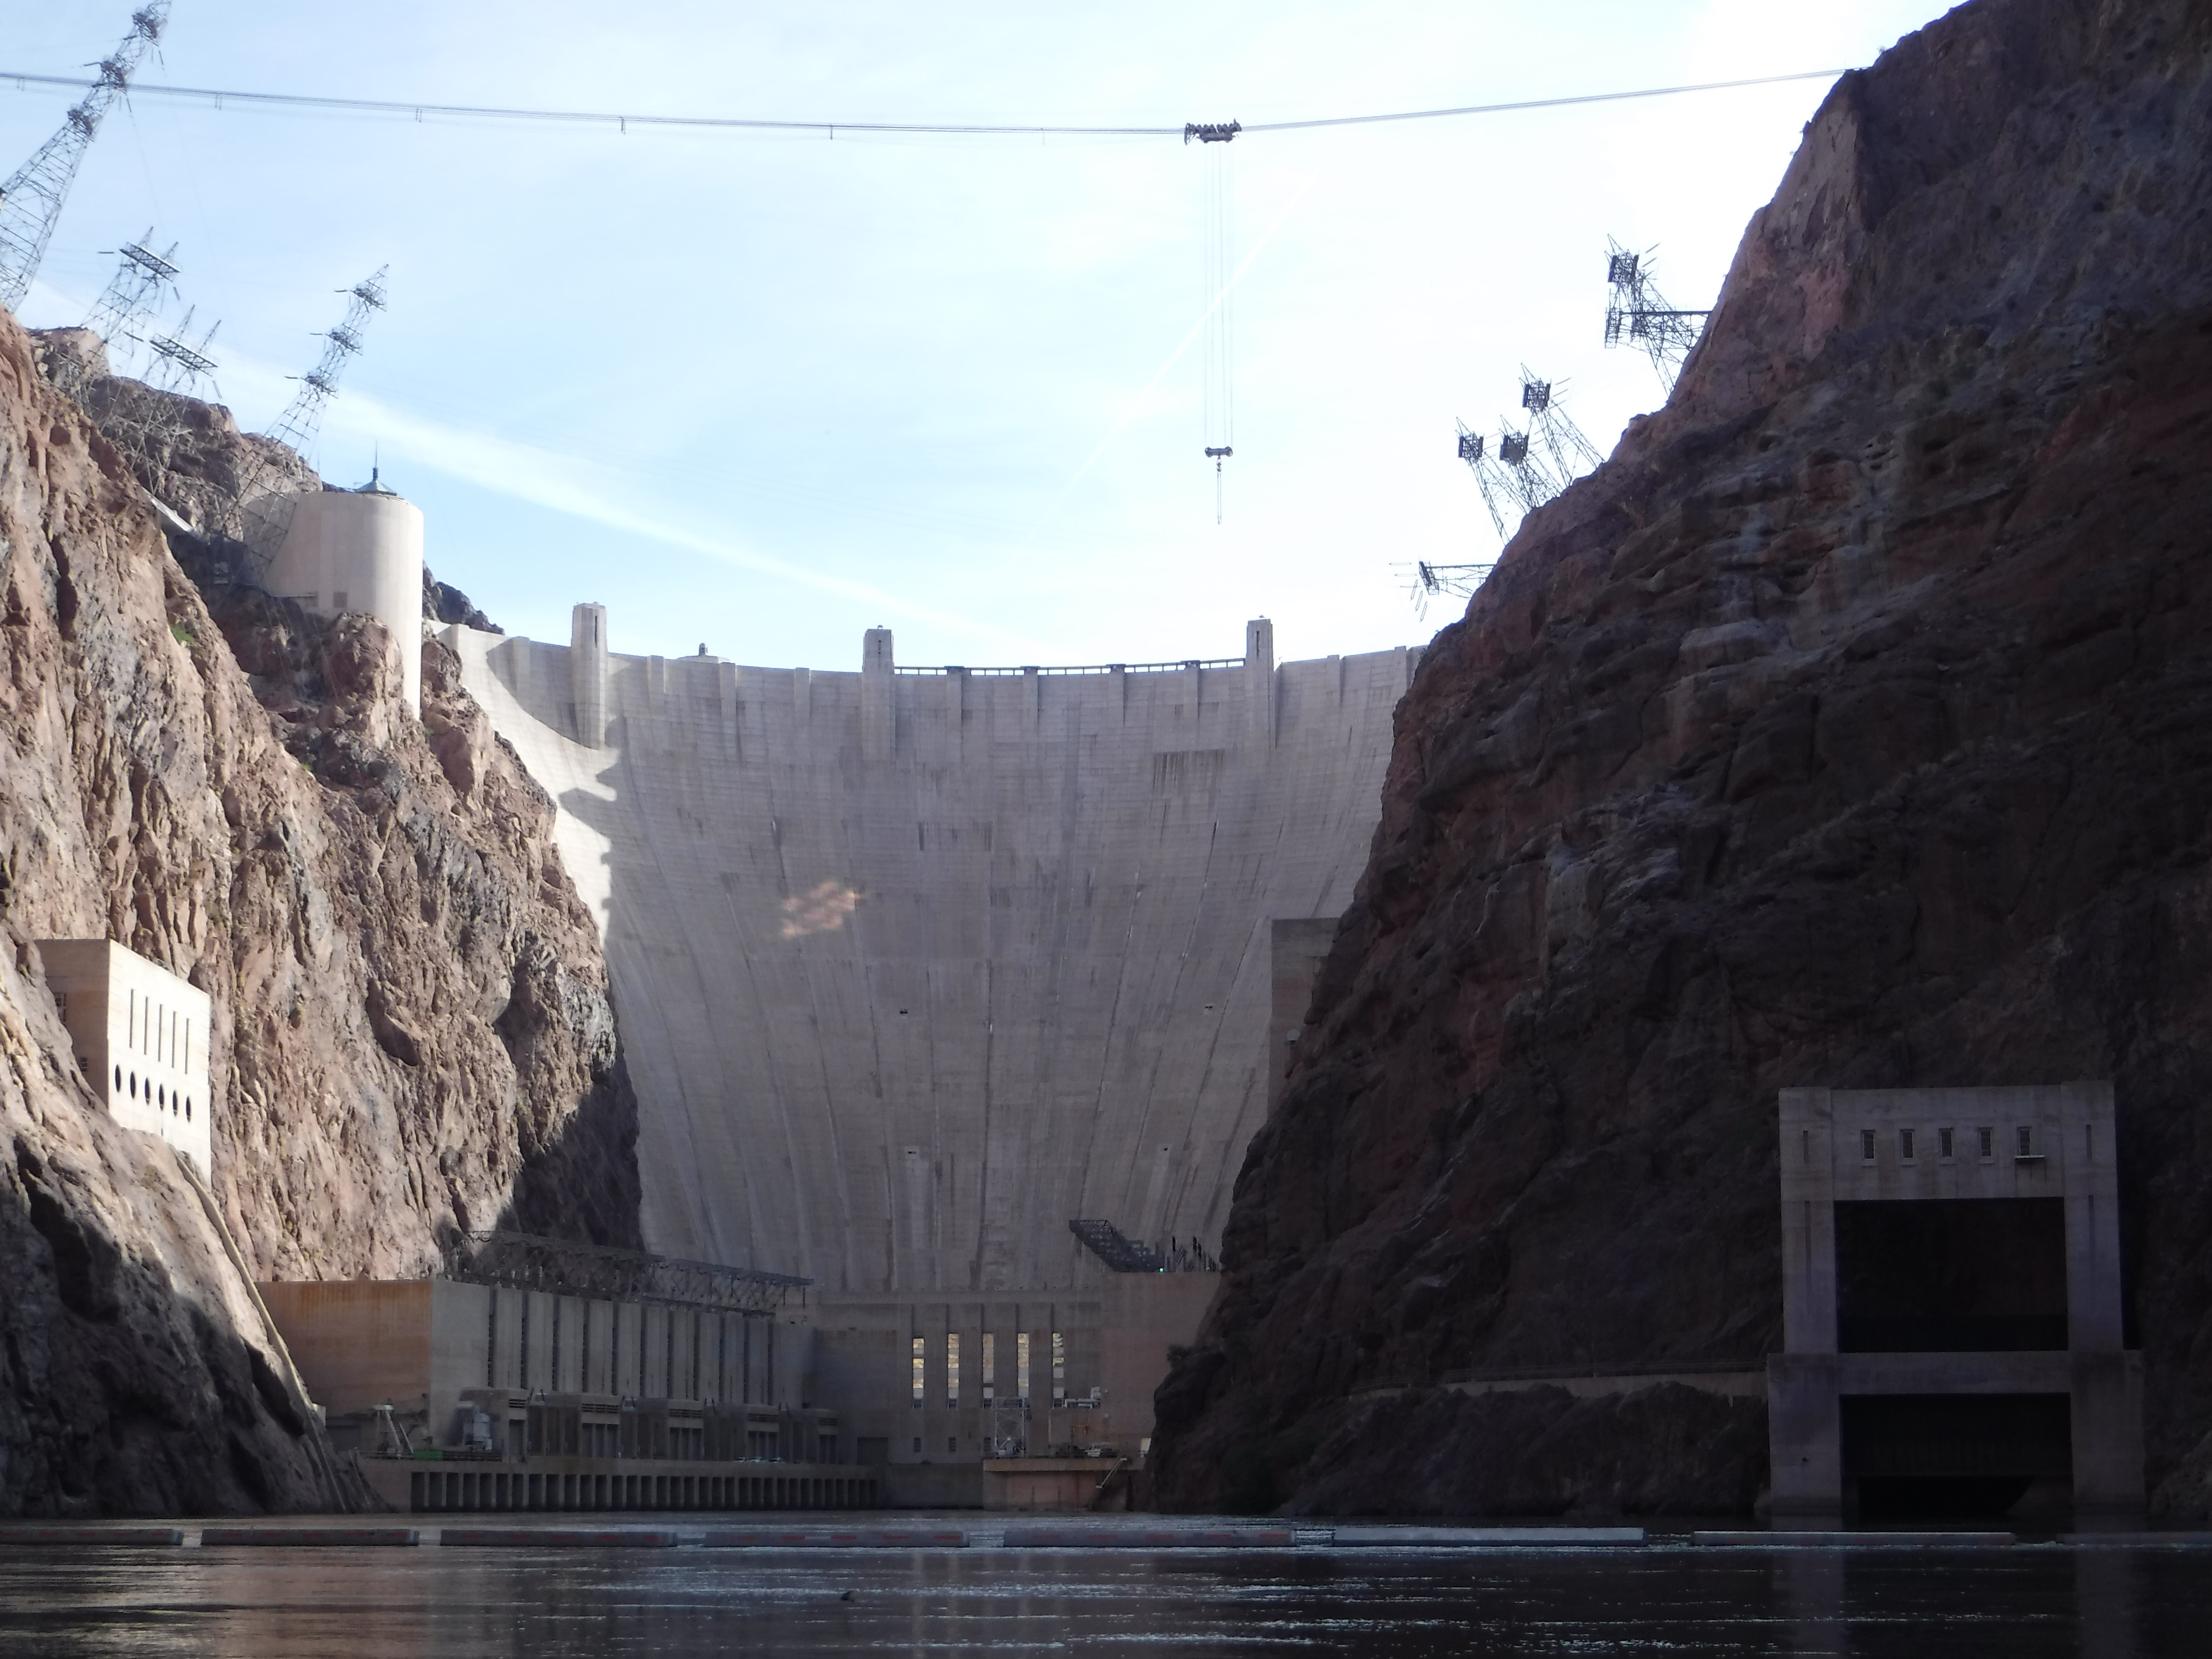 Downstream View of Hoover Damn